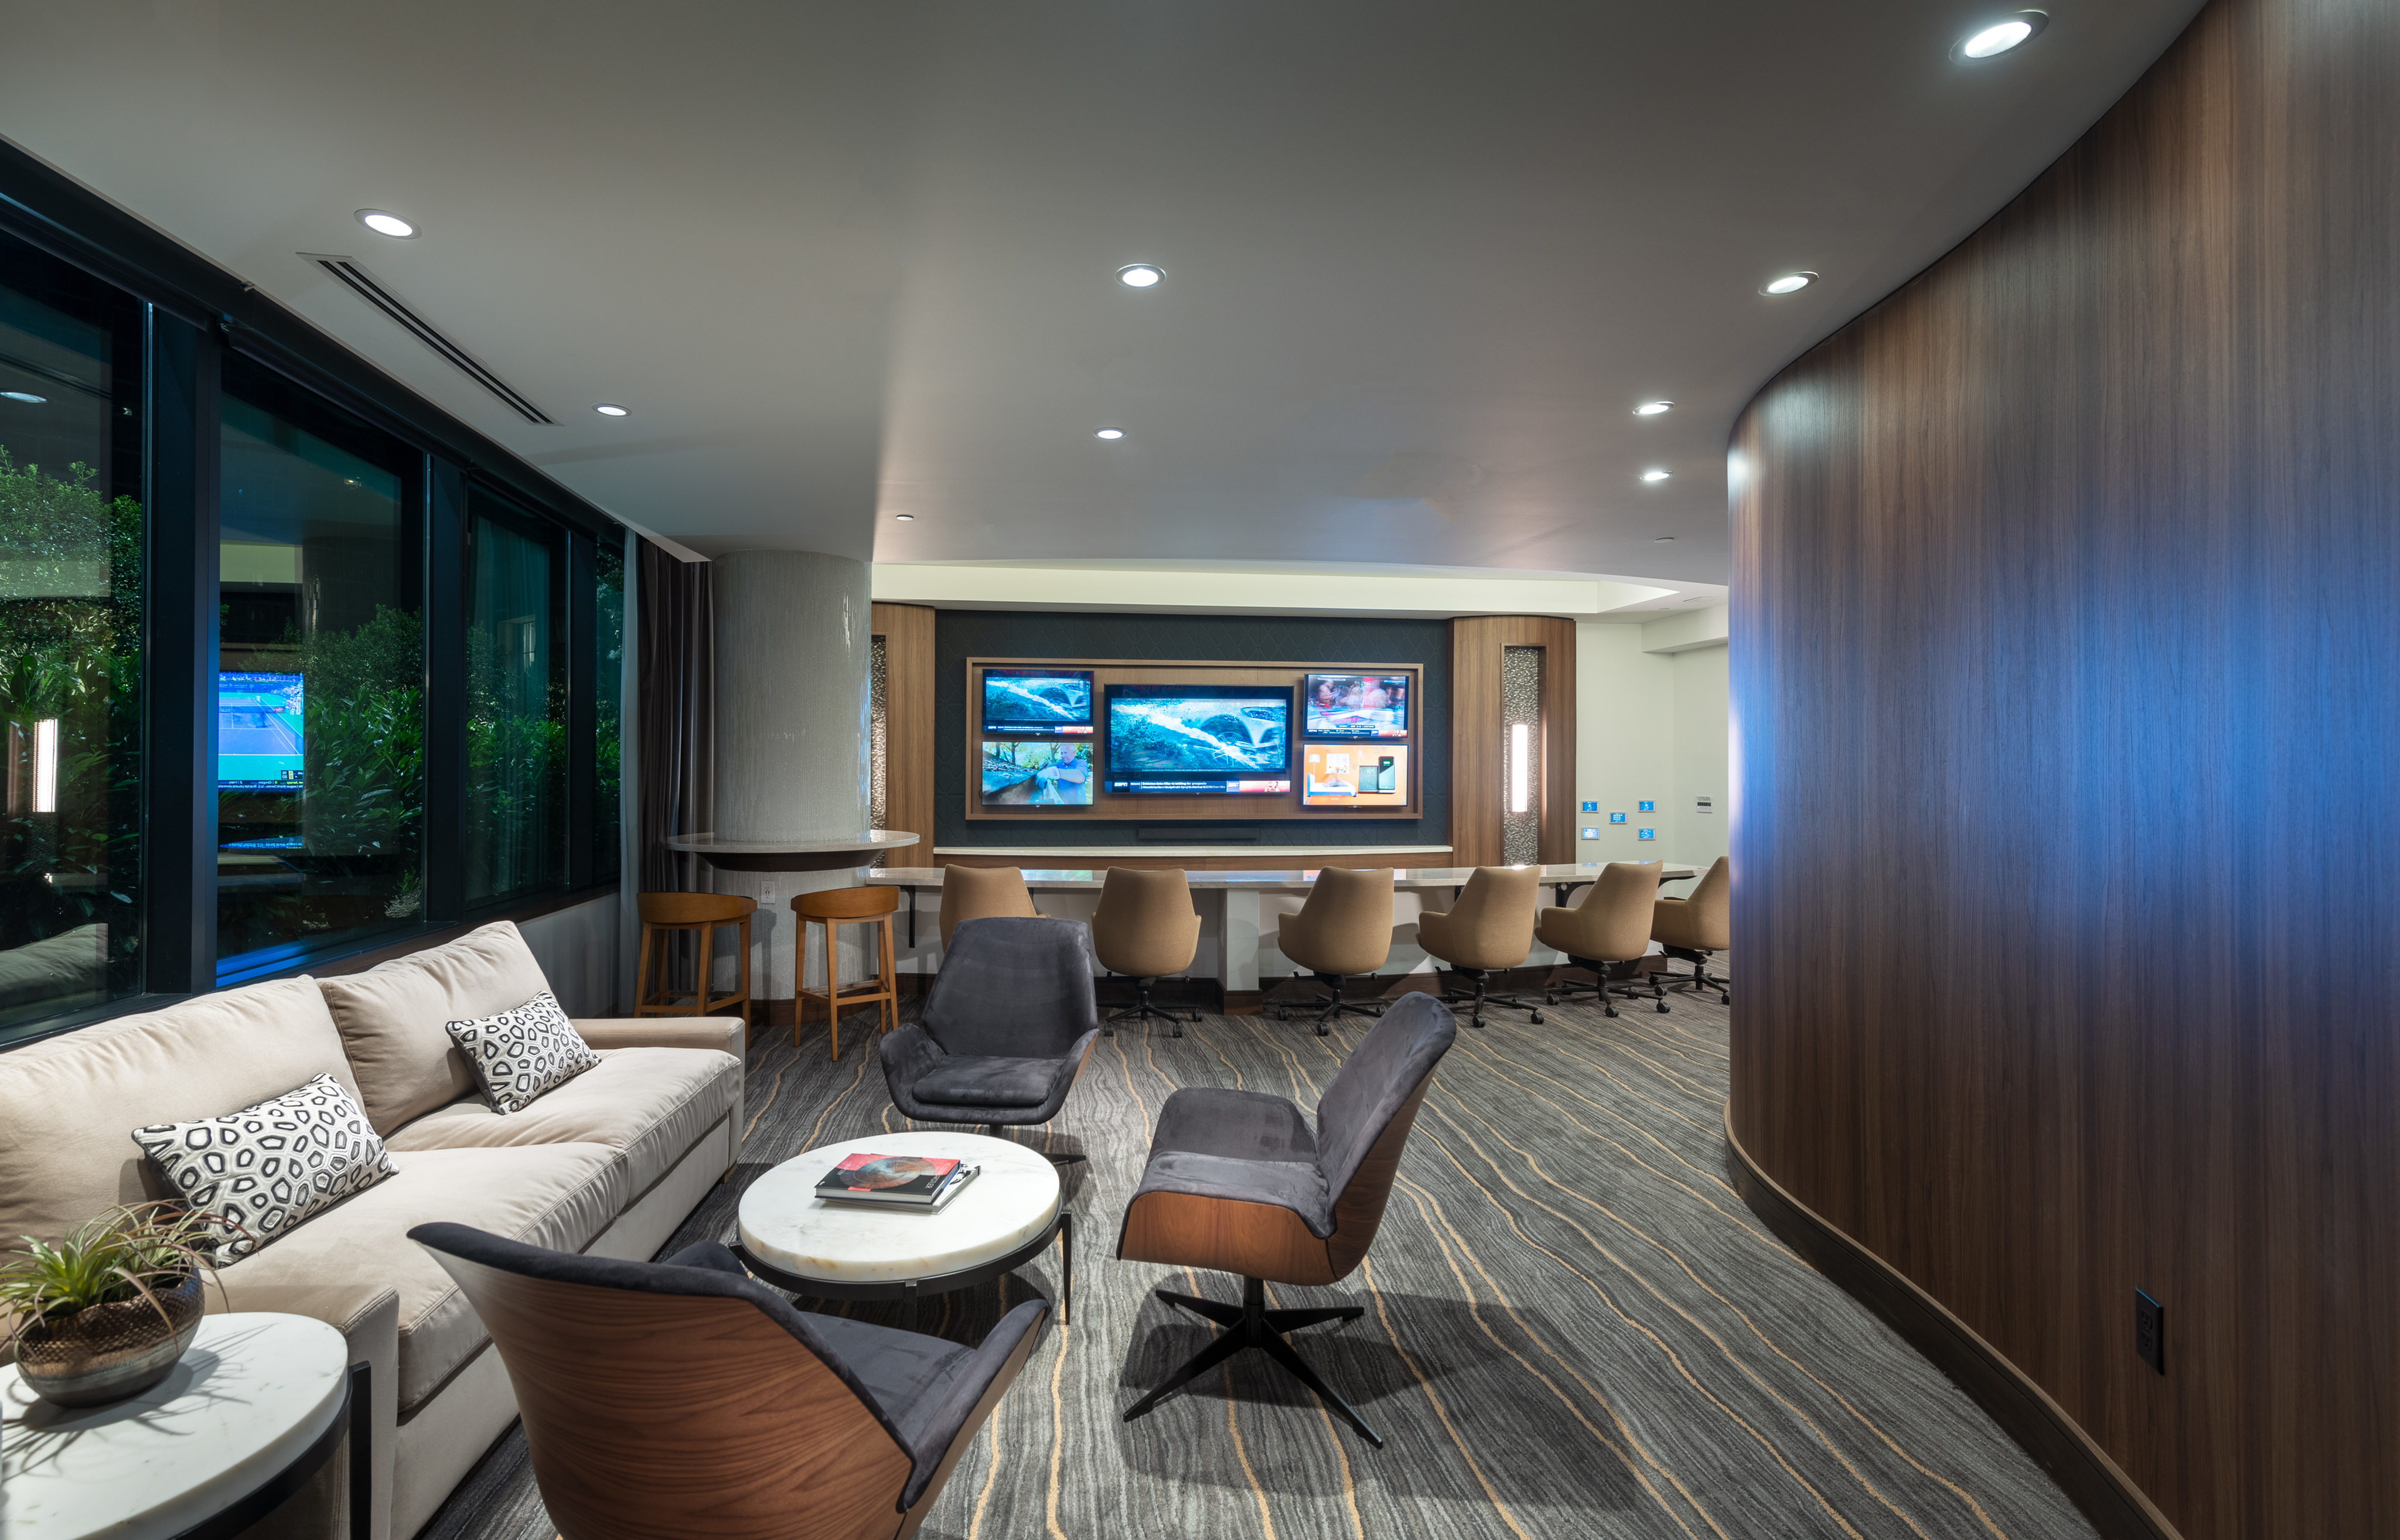 Image of Media Room Featuring 5 Smart TV's and Lounge Seating for Hanover Midtown